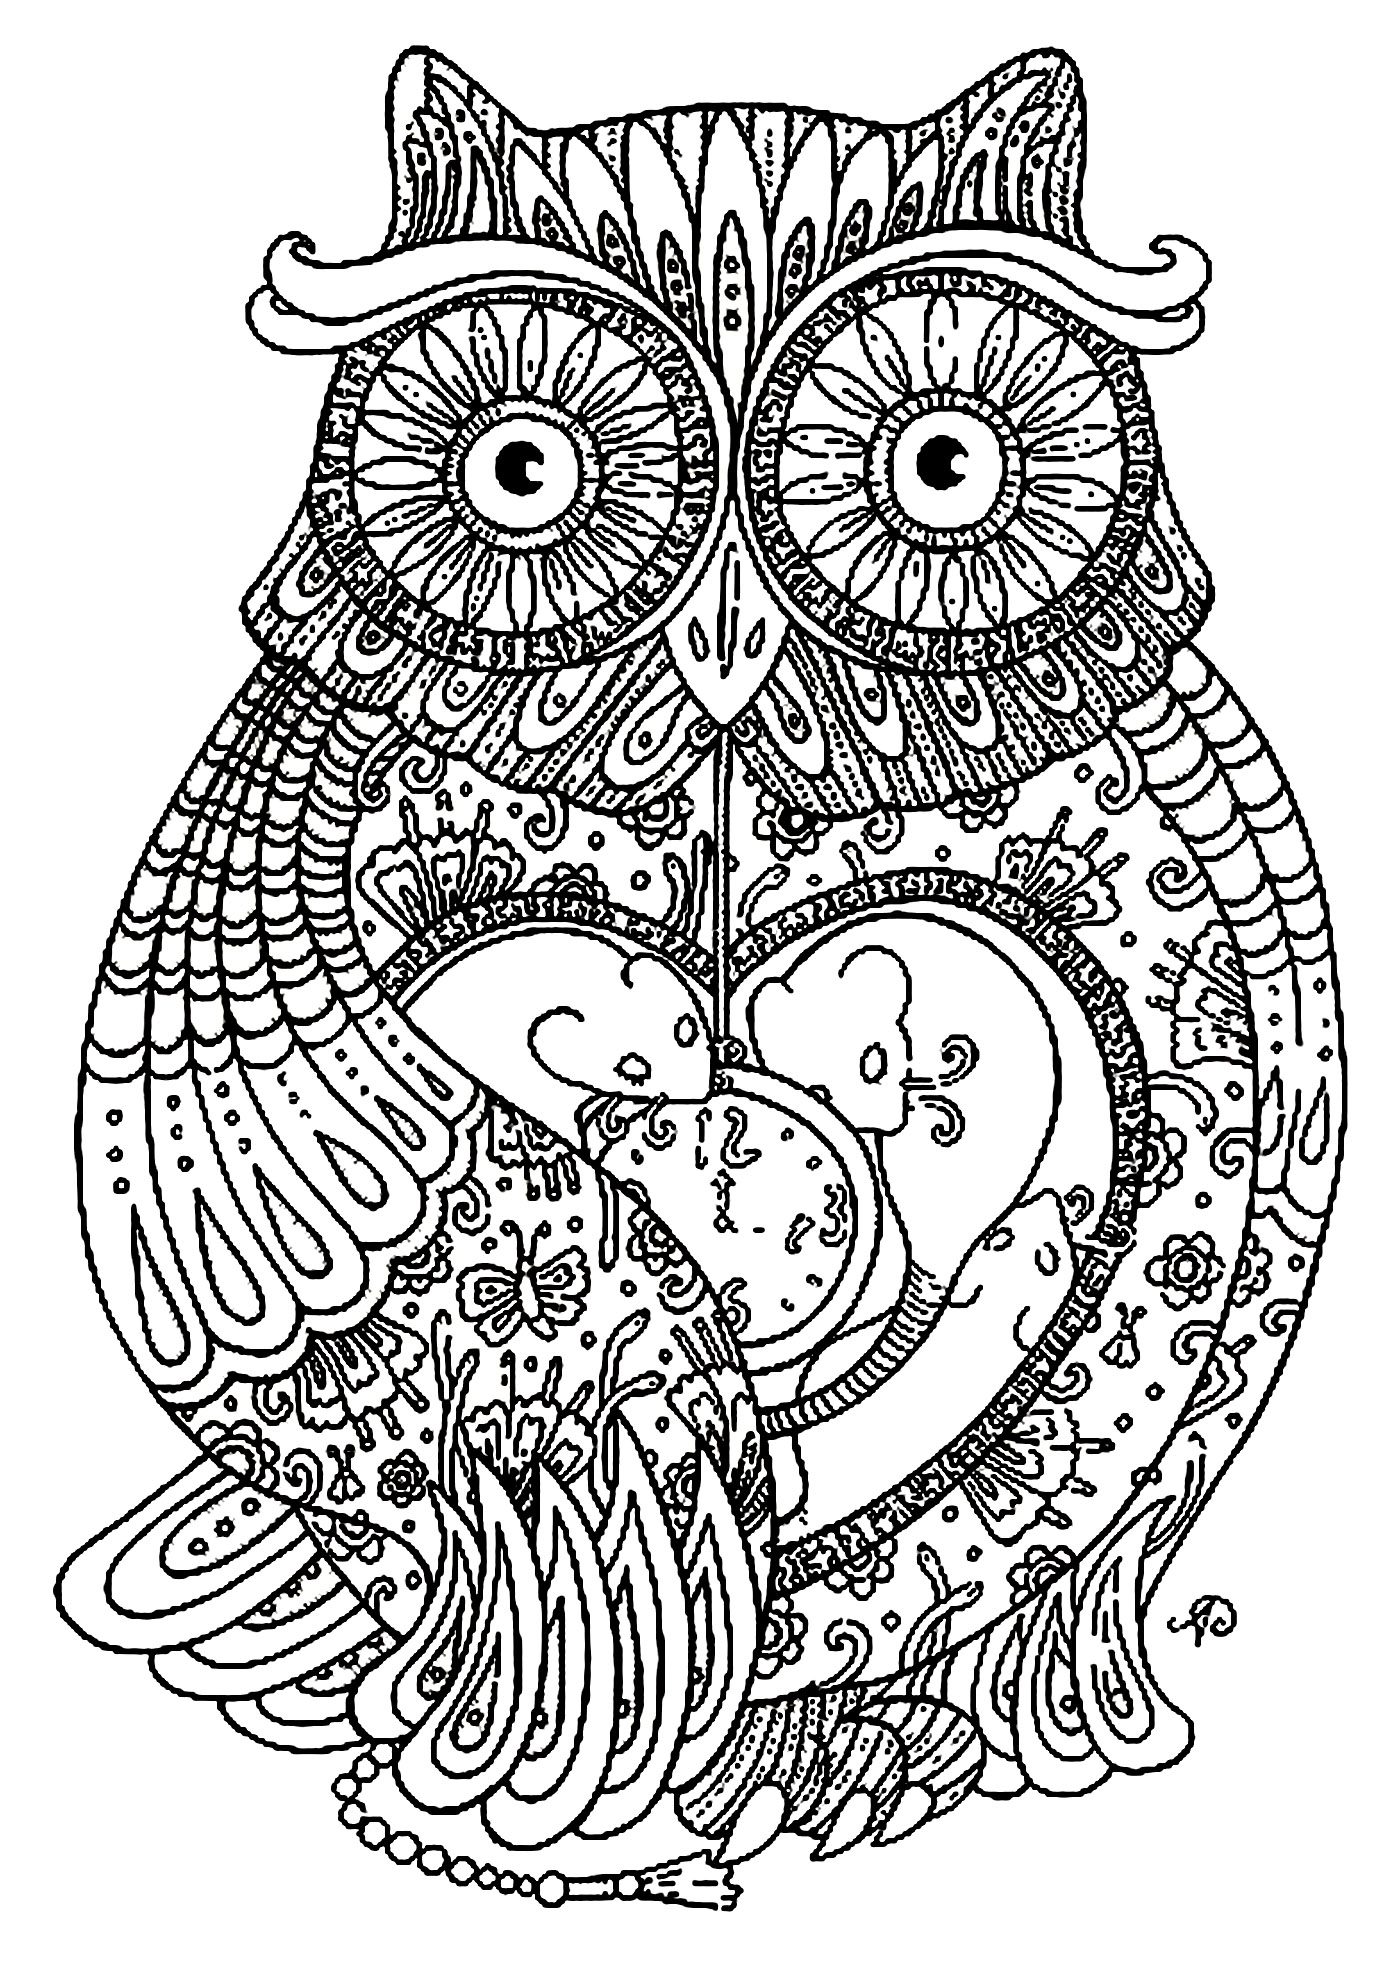 Fresh Owl Mandala Coloring Pages Design Printable Coloring Sheet to Print Of Modern Intricate Mandala Coloring Pages Coloring for Good Mandala to Print